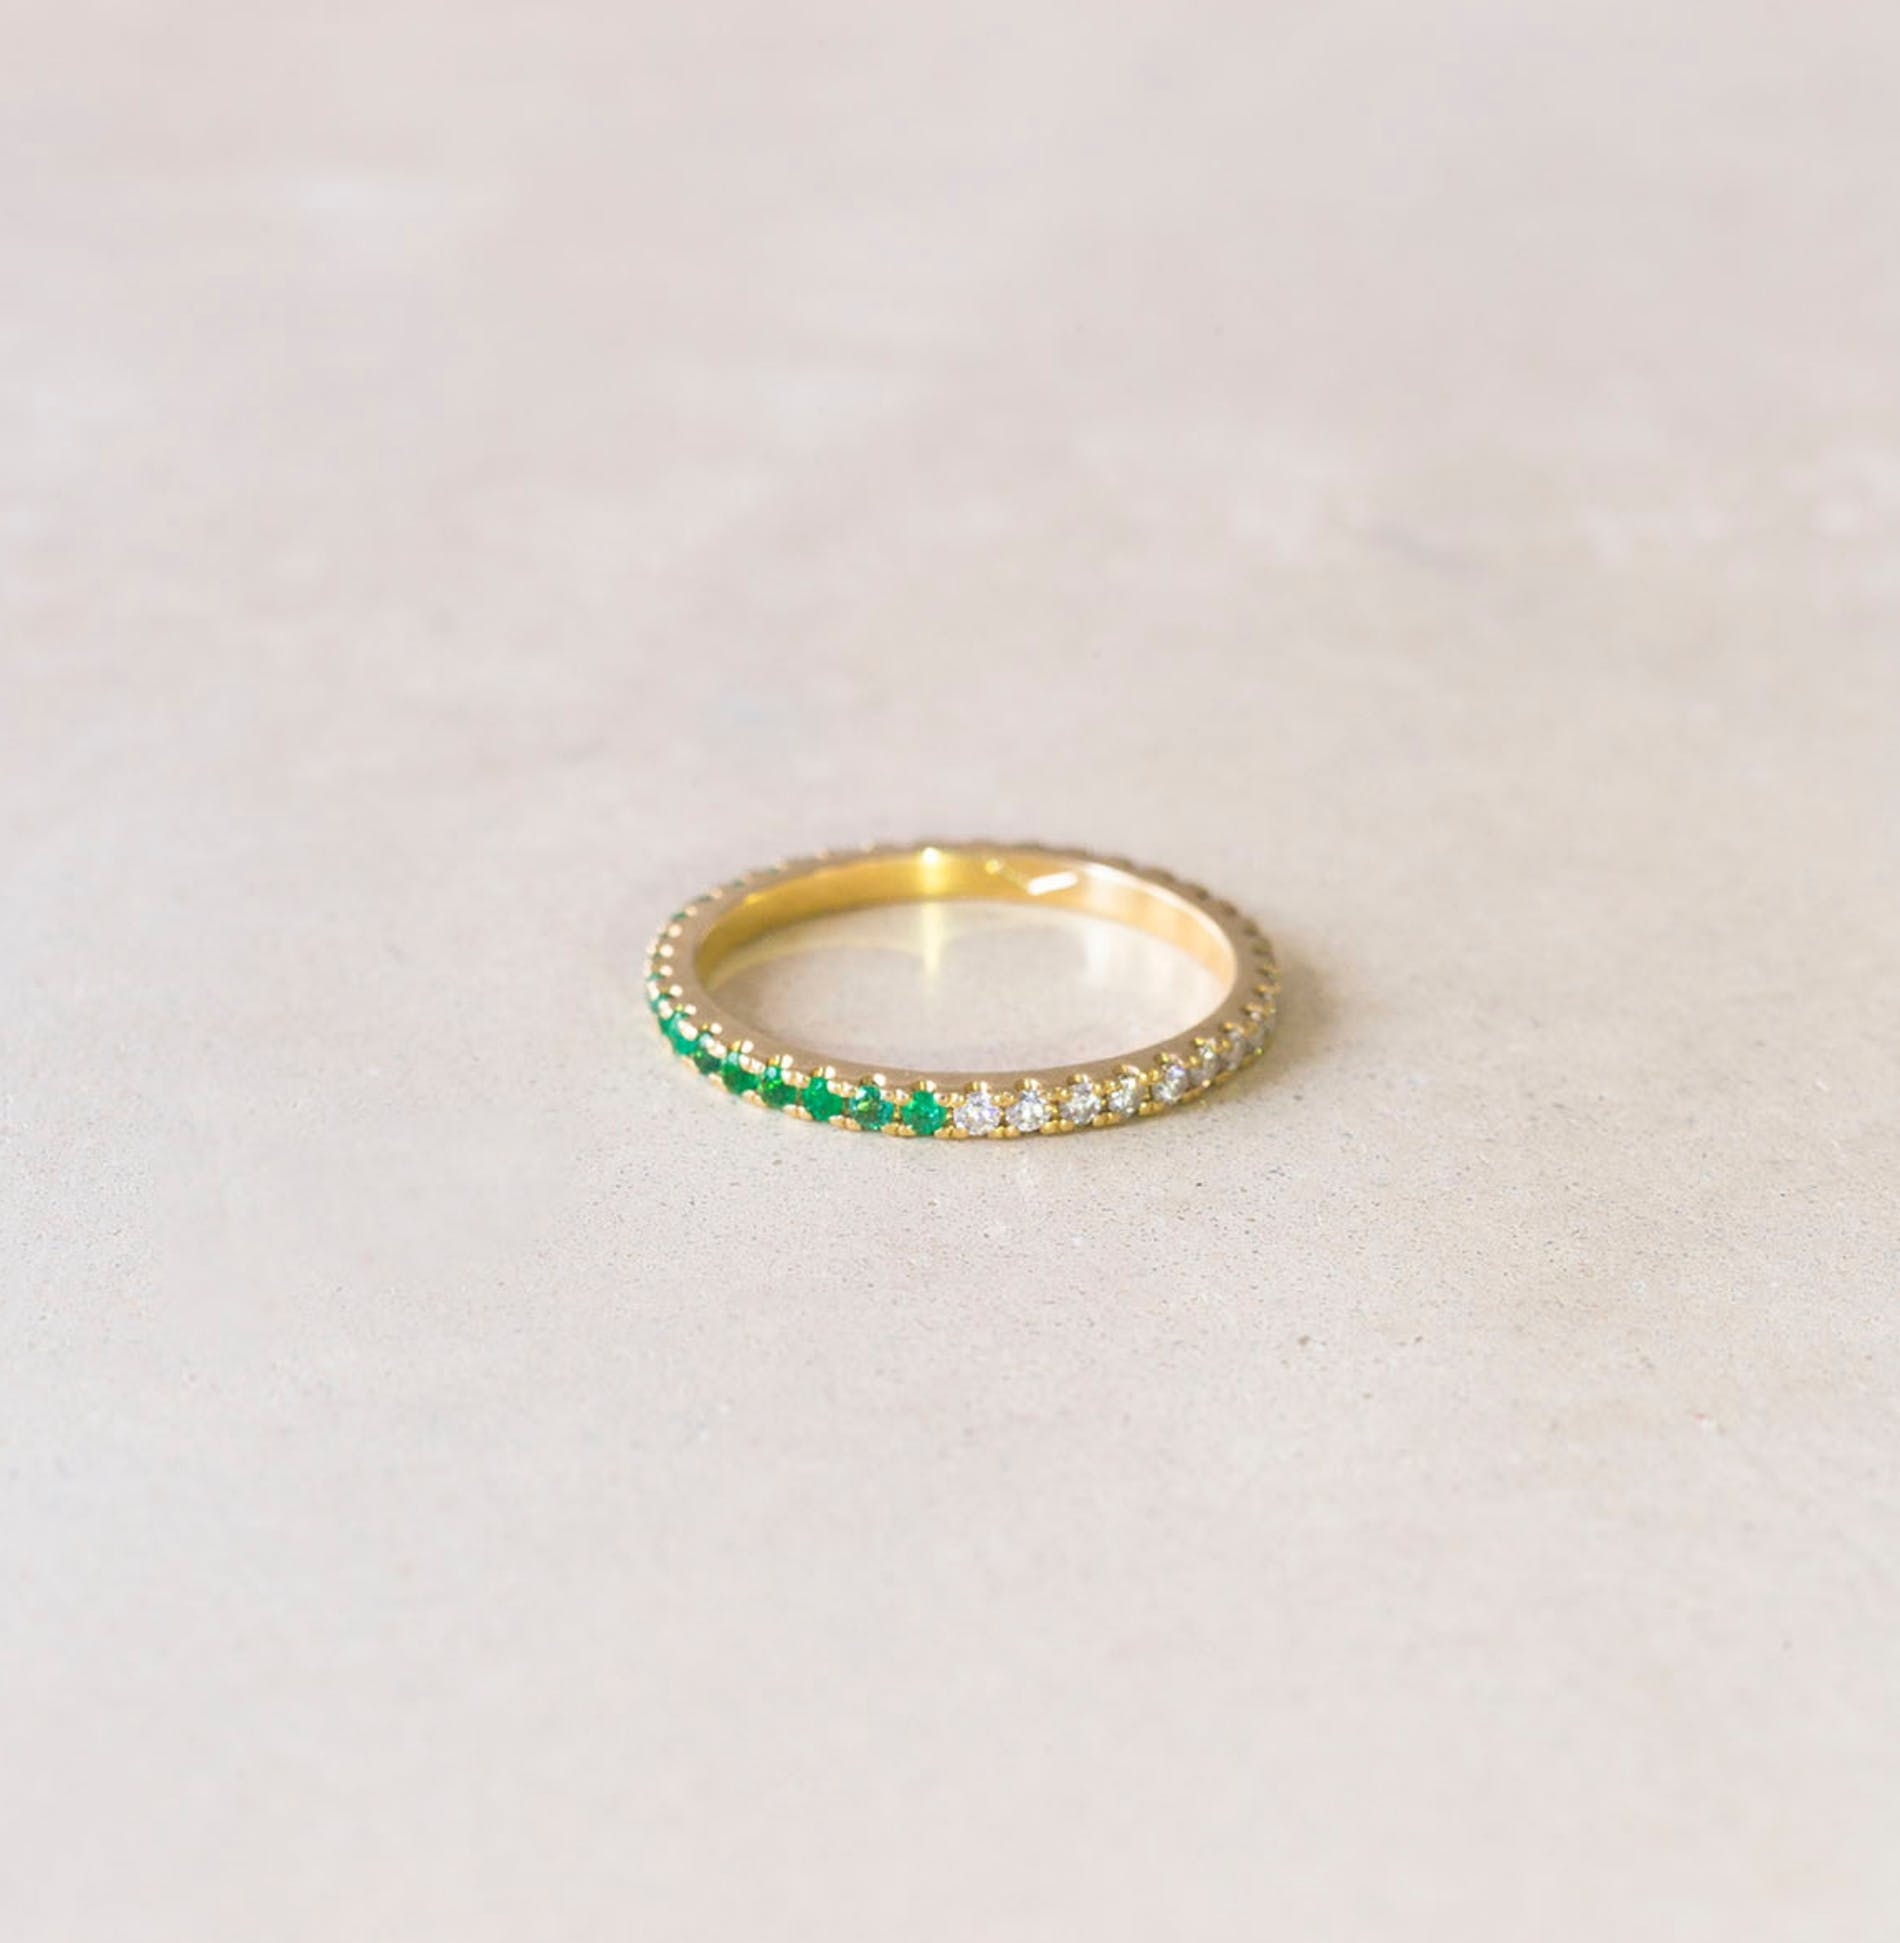 1576535363503095 elliot and ostrich moments signature lucie ring alliance gold diamond emerald personalise engrave 1